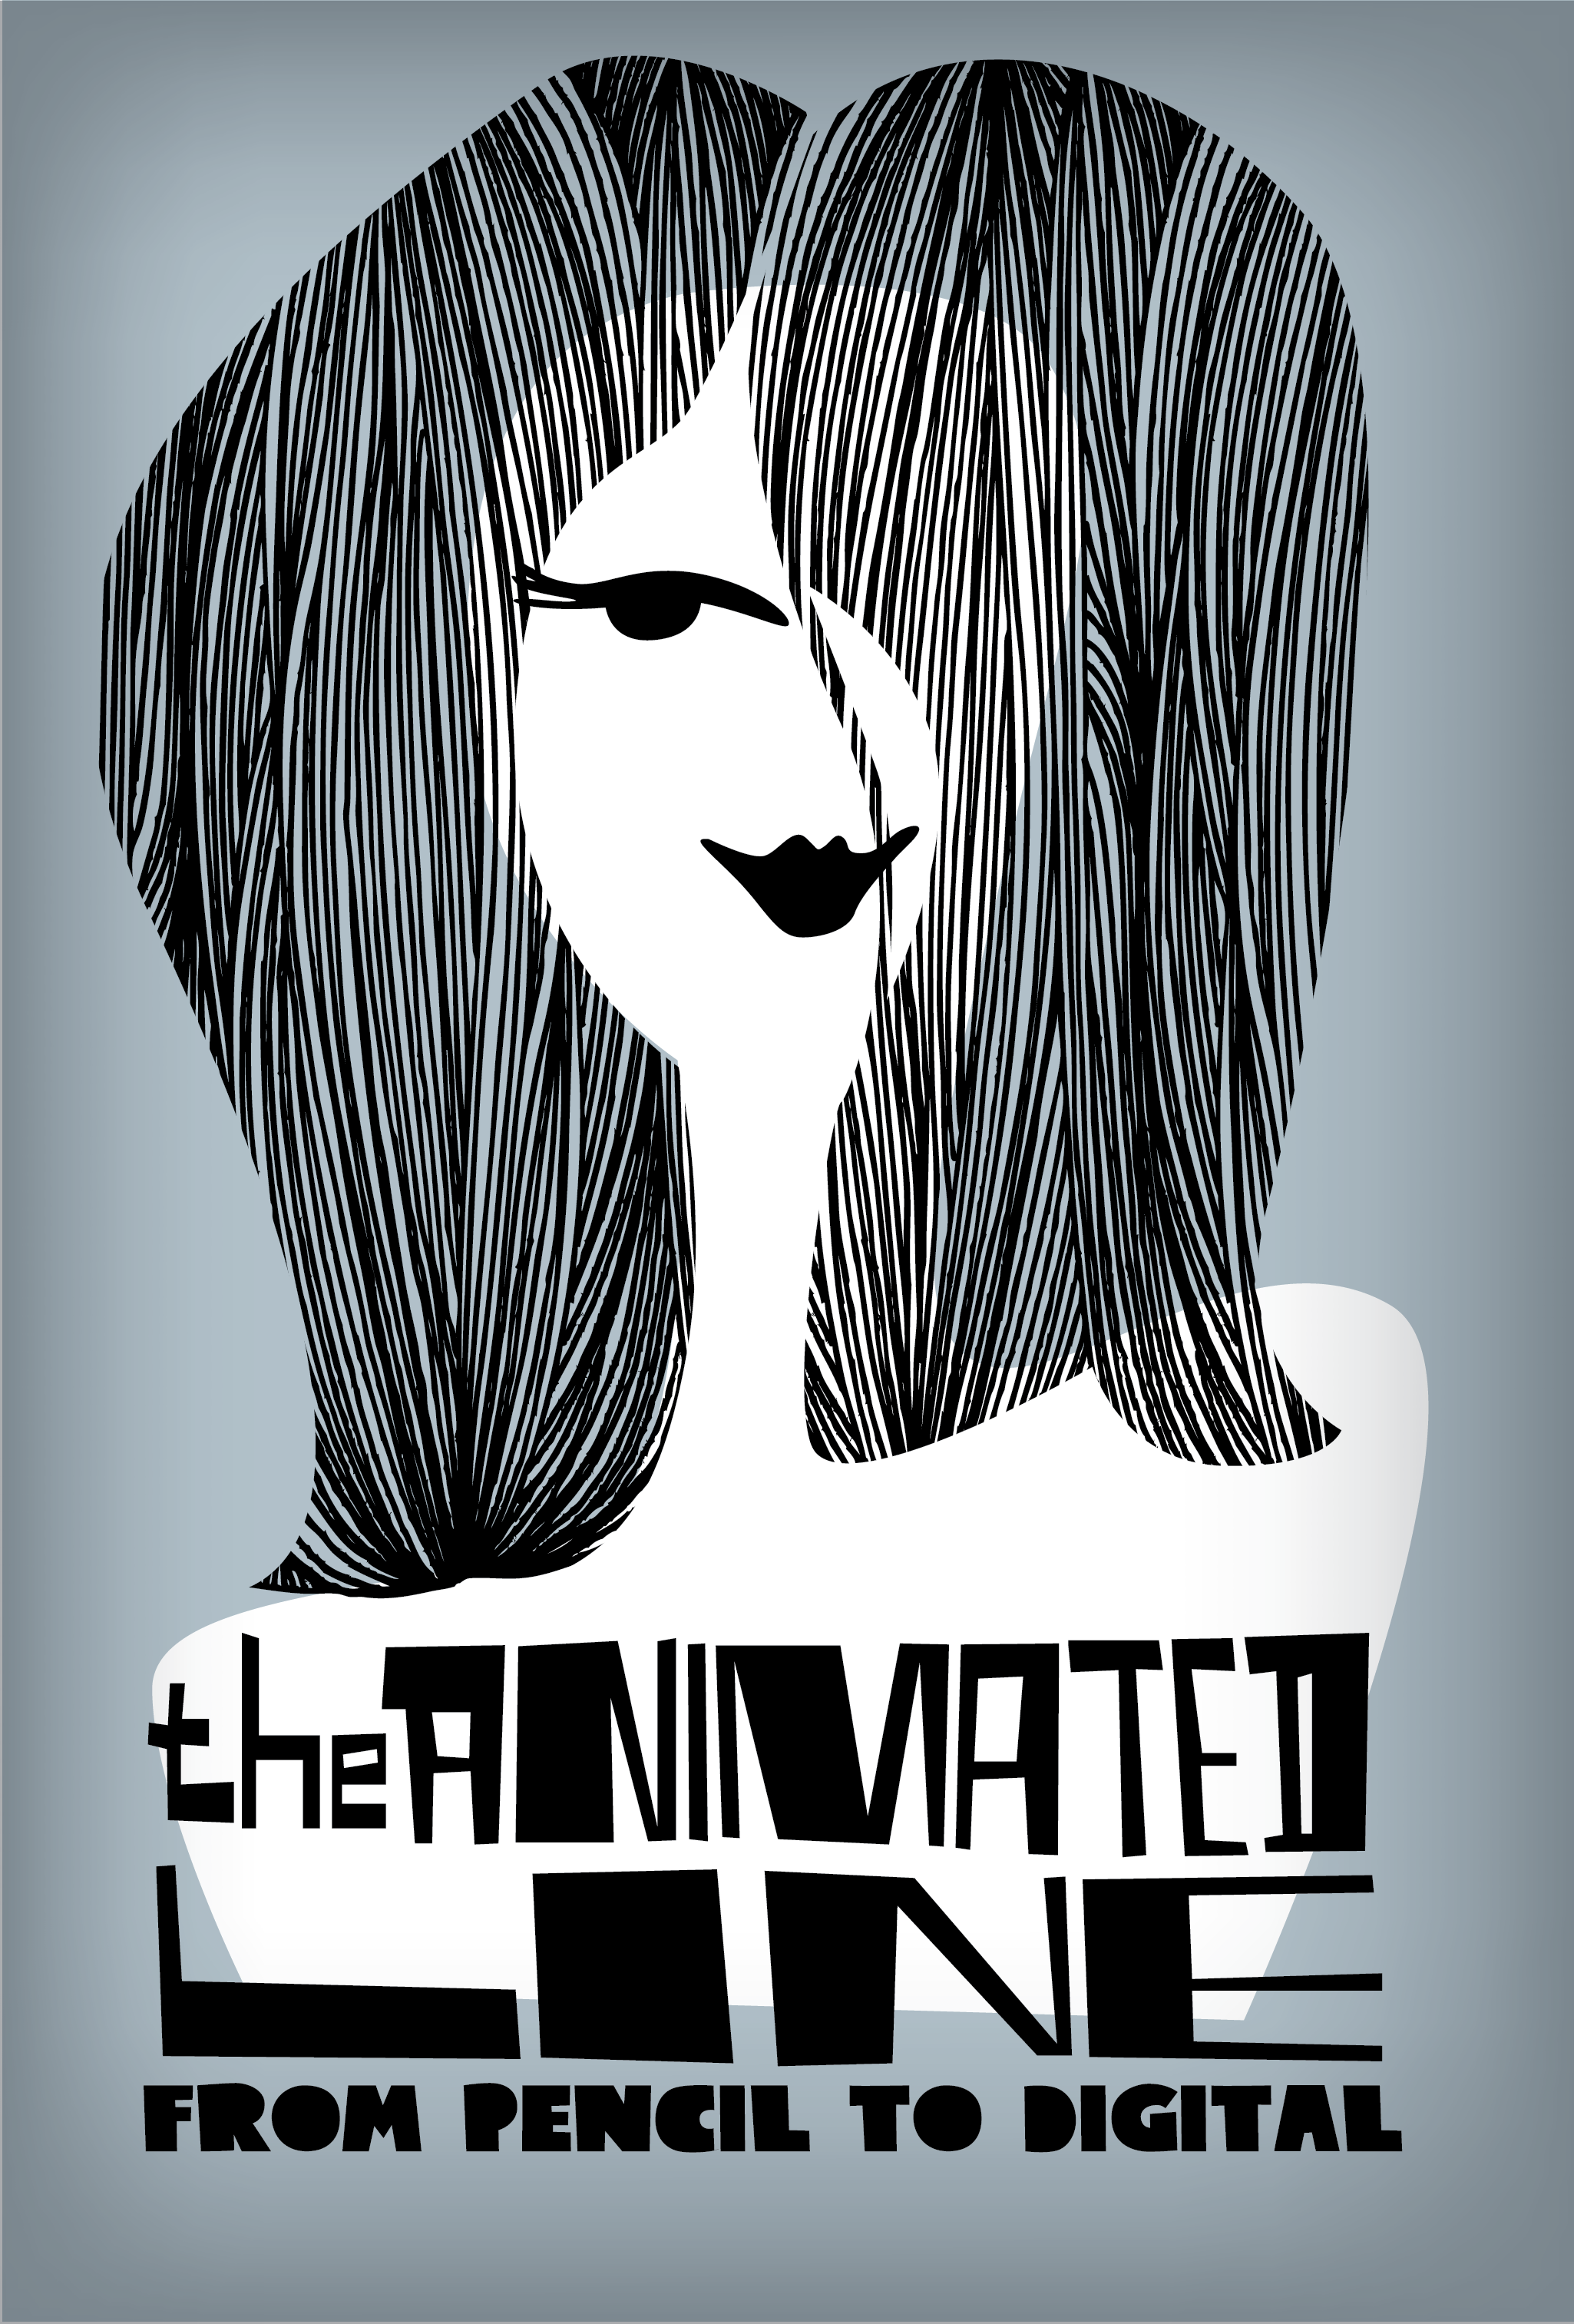 Poster illustration of woman's face.